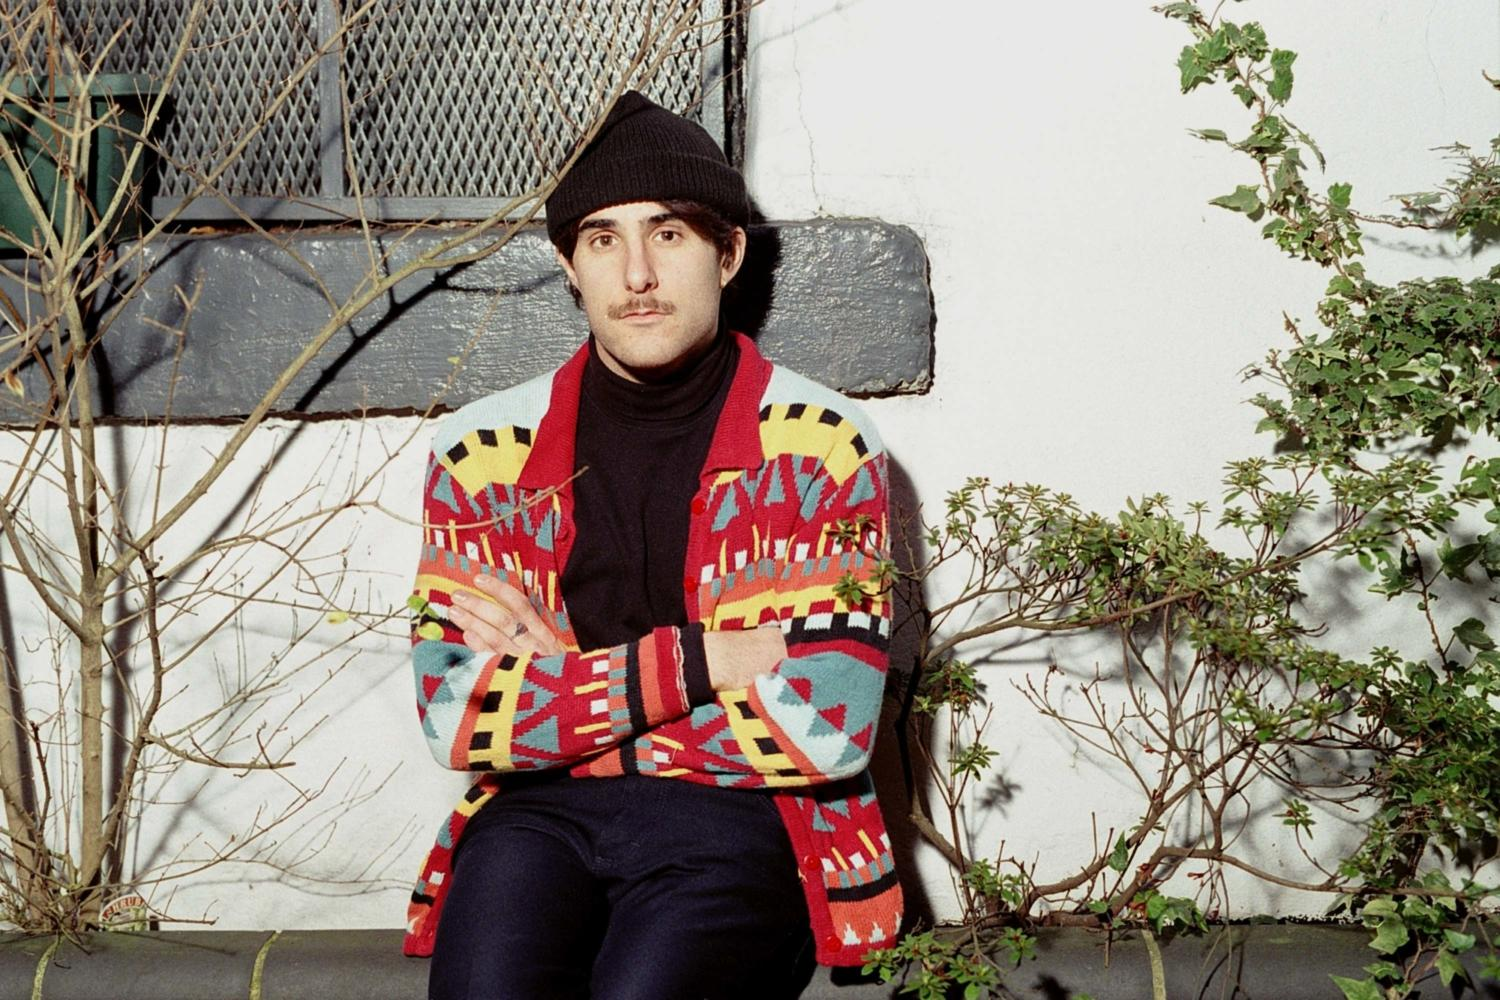 HalfNoise announces UK & European tour dates